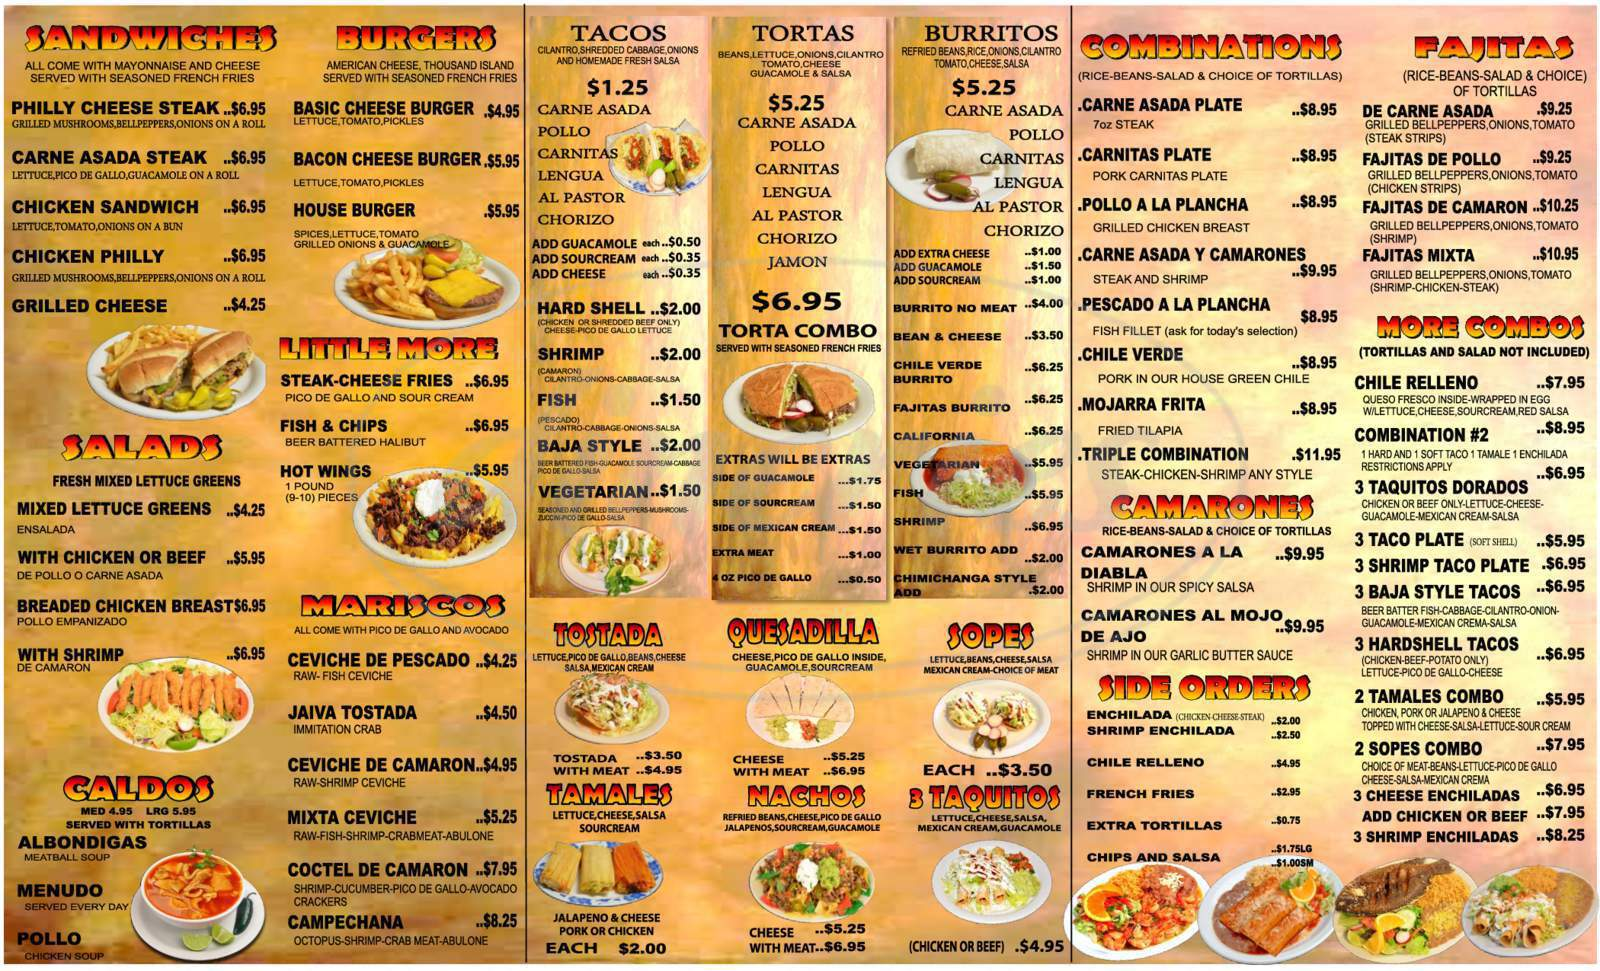 menu for Merced's Restaurant